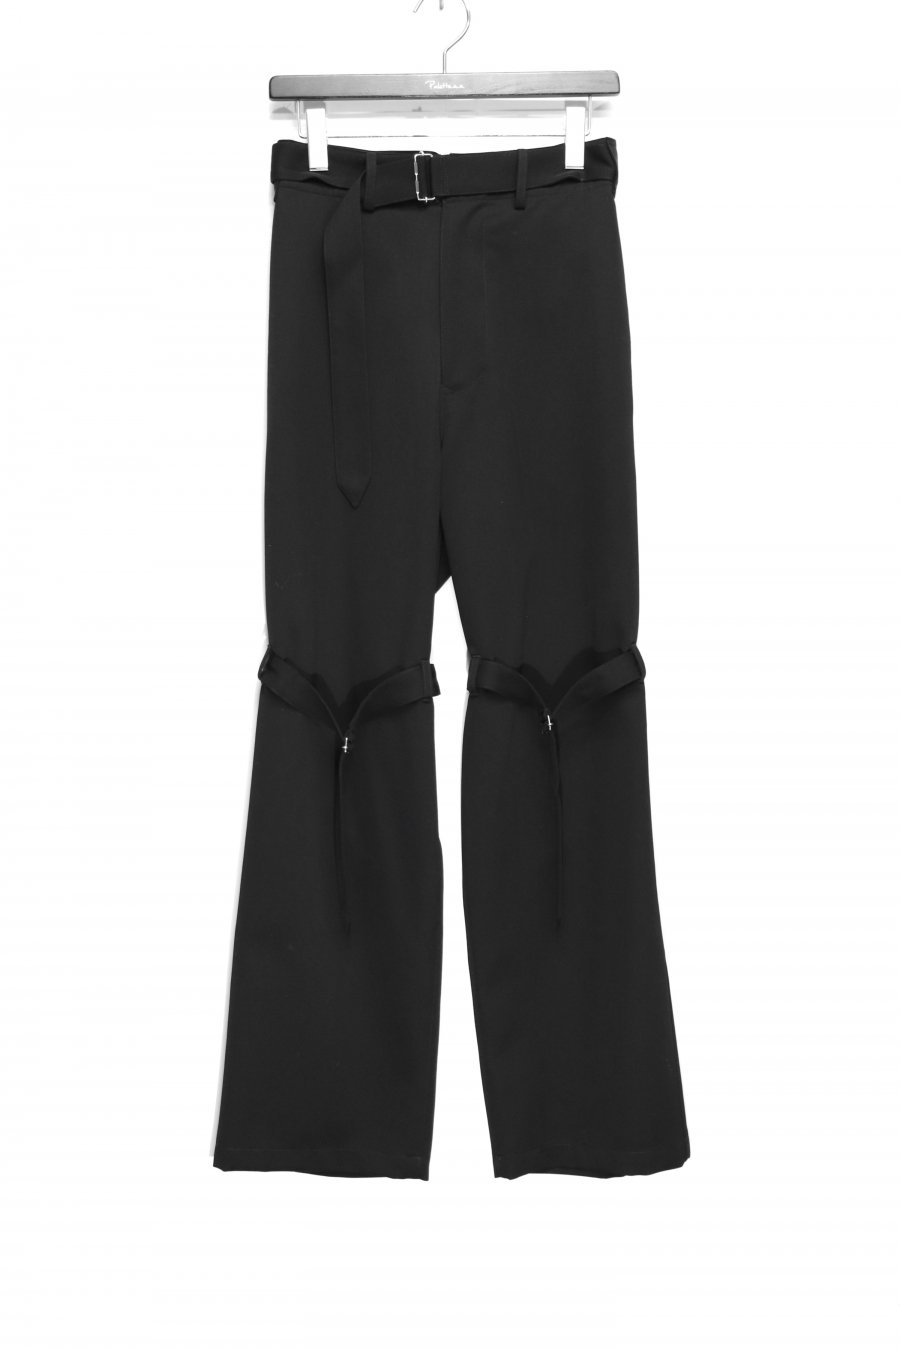 JOHN MASON SMITH  WOOL SATIN FRENCH ARMY OVERPANTS(BLACK)<img class='new_mark_img2' src='https://img.shop-pro.jp/img/new/icons15.gif' style='border:none;display:inline;margin:0px;padding:0px;width:auto;' />